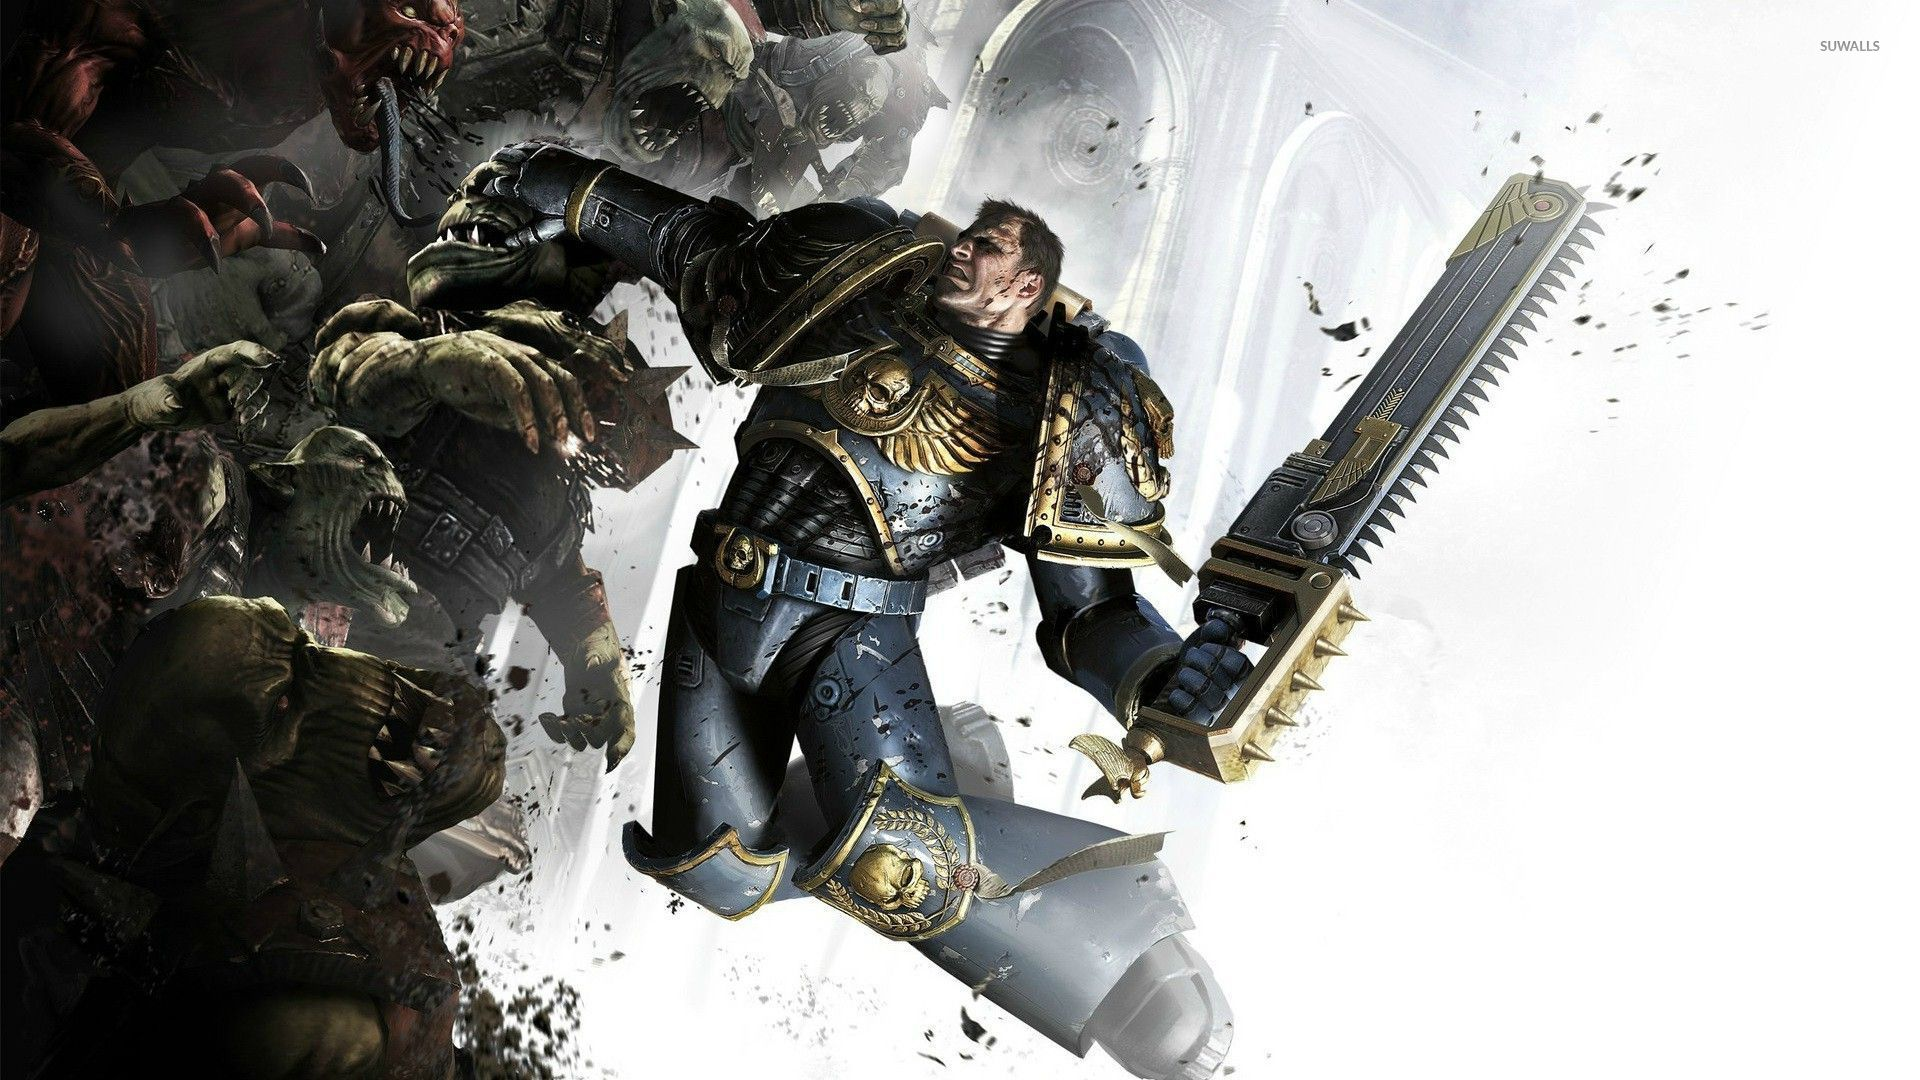 warhammer 40,000 [8] wallpaper - game wallpapers - #27101